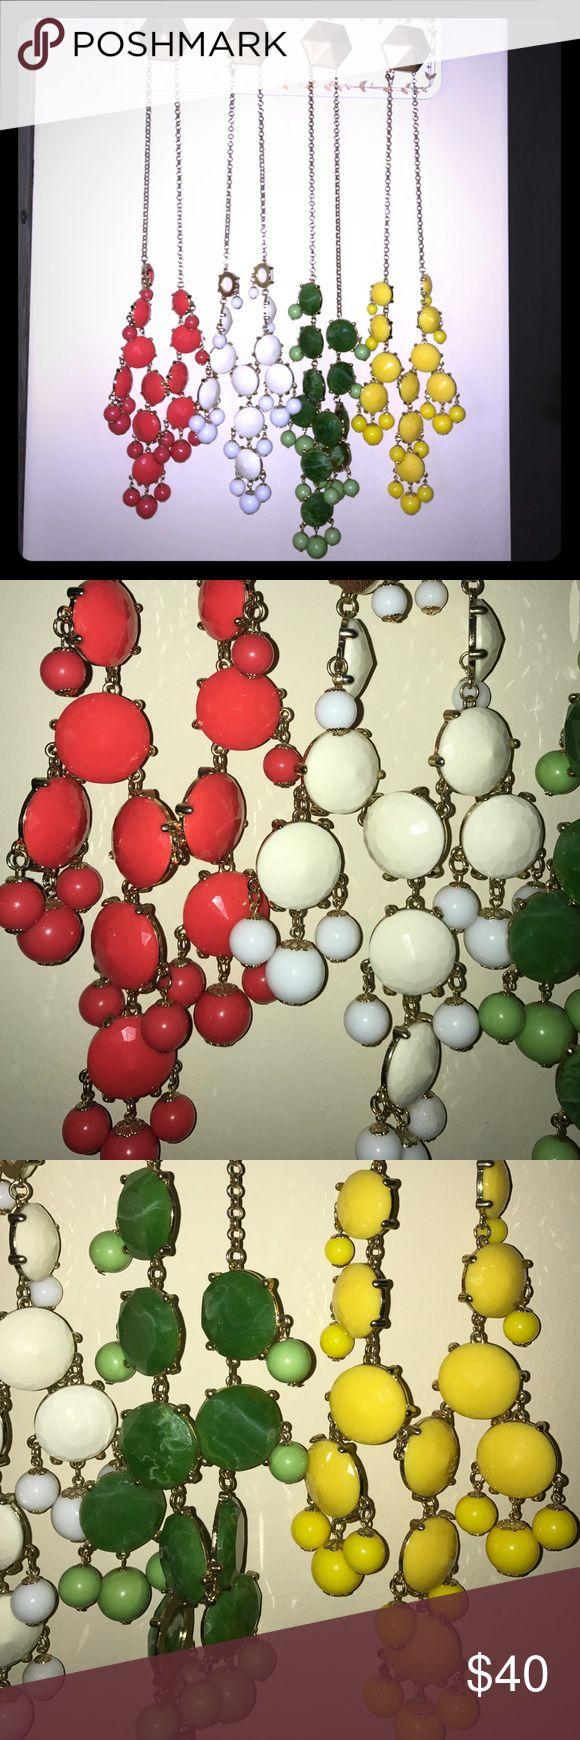 4 franchescas necklaces Green, yellow, coral and white long bubble necklaces sold separate for $12 each or all together for $40 great condition just don't get worn anymore Francesca's Collections Jewelry Necklaces